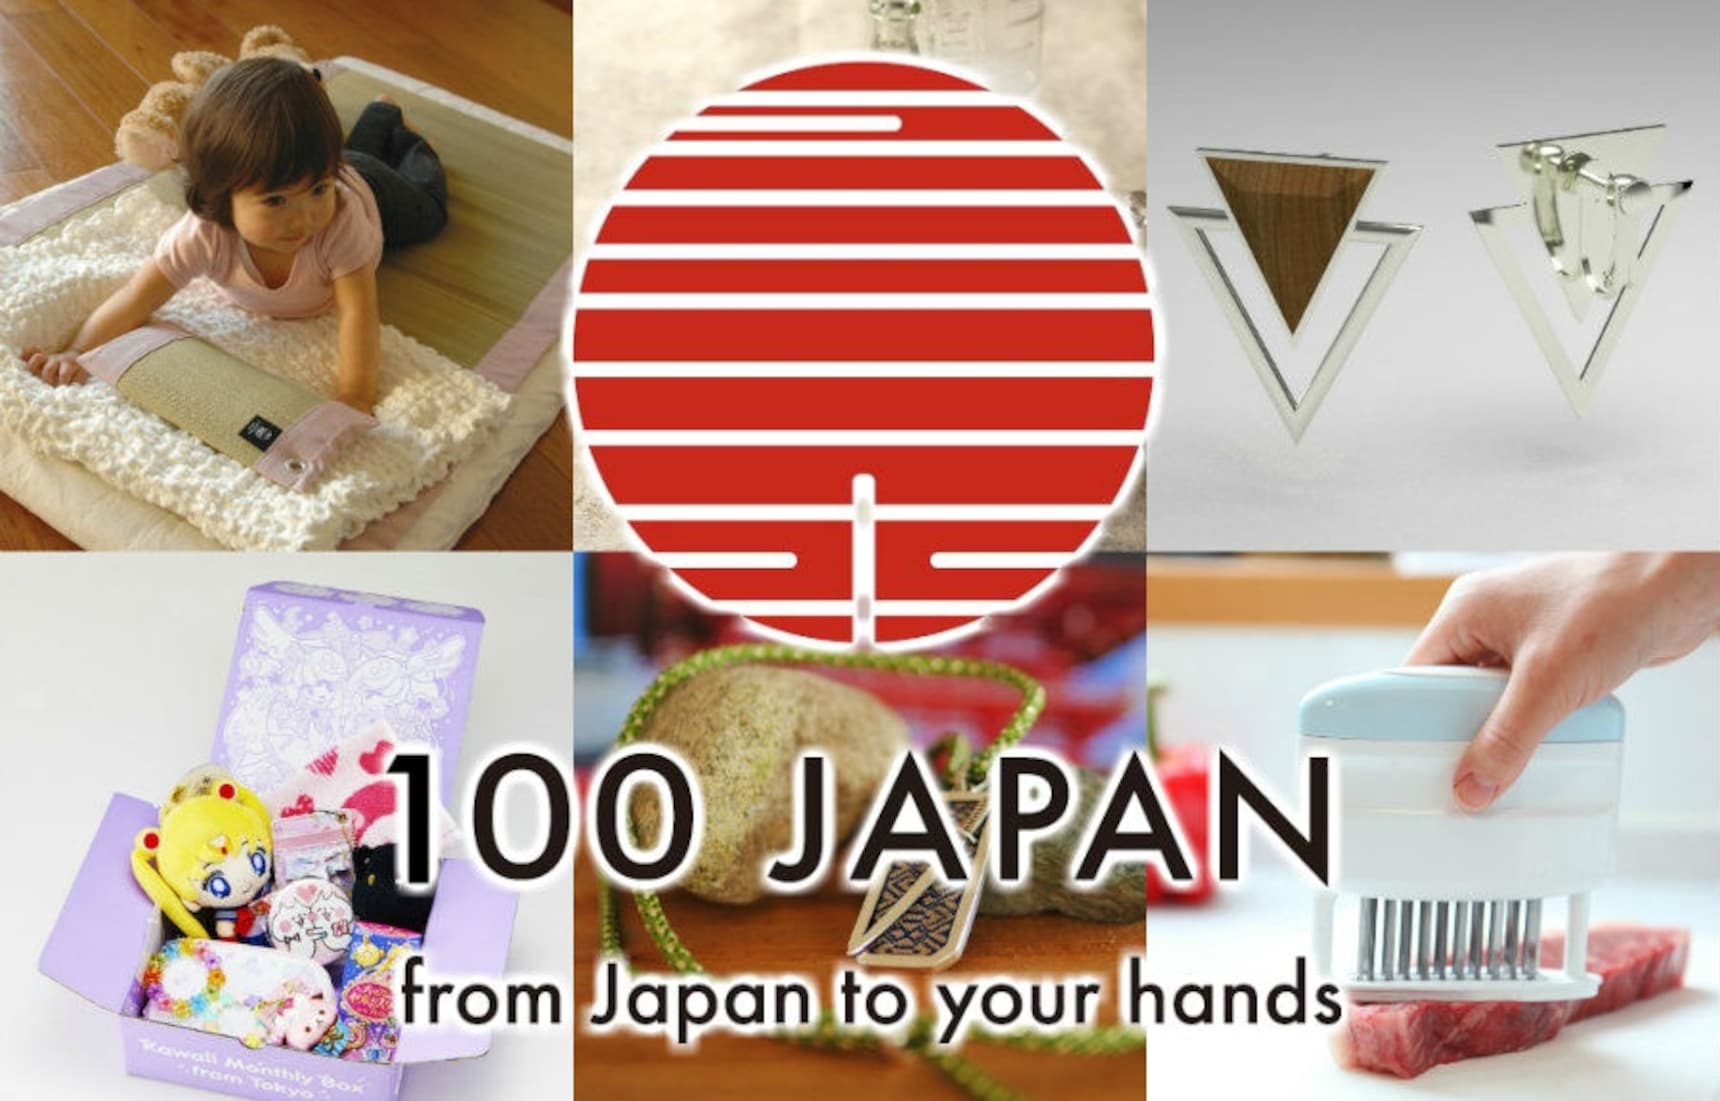 What Is 100 Japan?